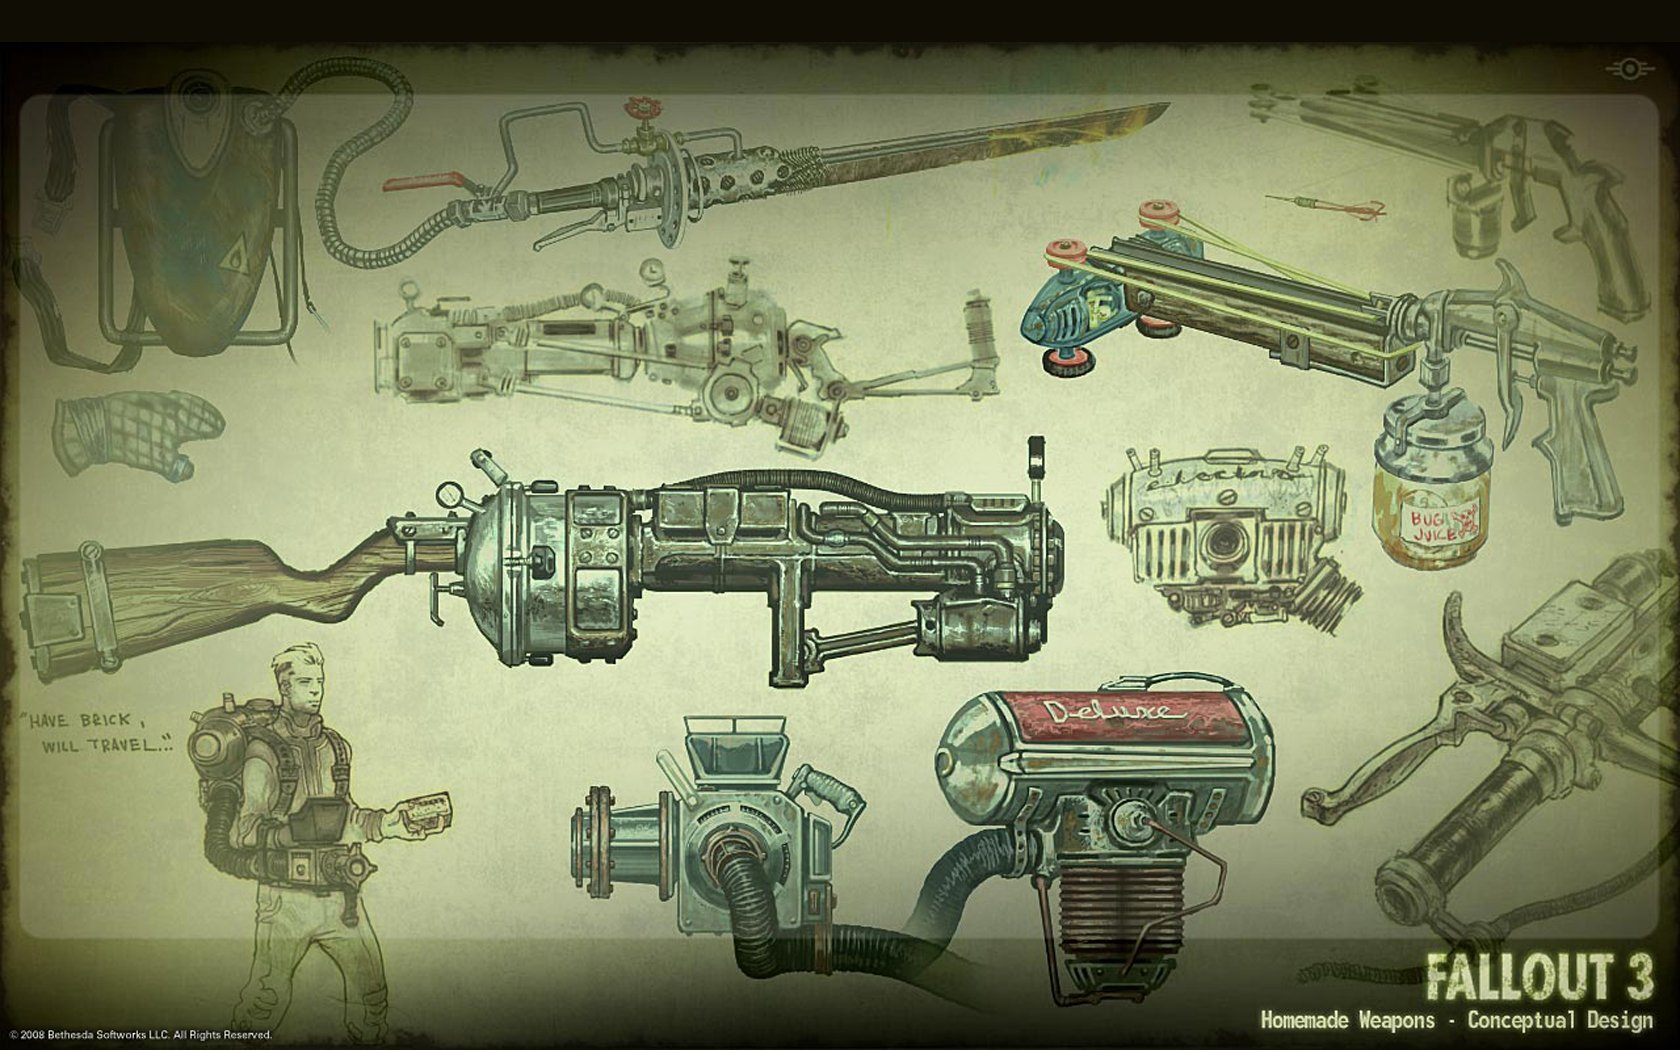 Fallout 3 Weapons Google Skins Fallout 3 Weapons Google Backgrounds 1680x1050